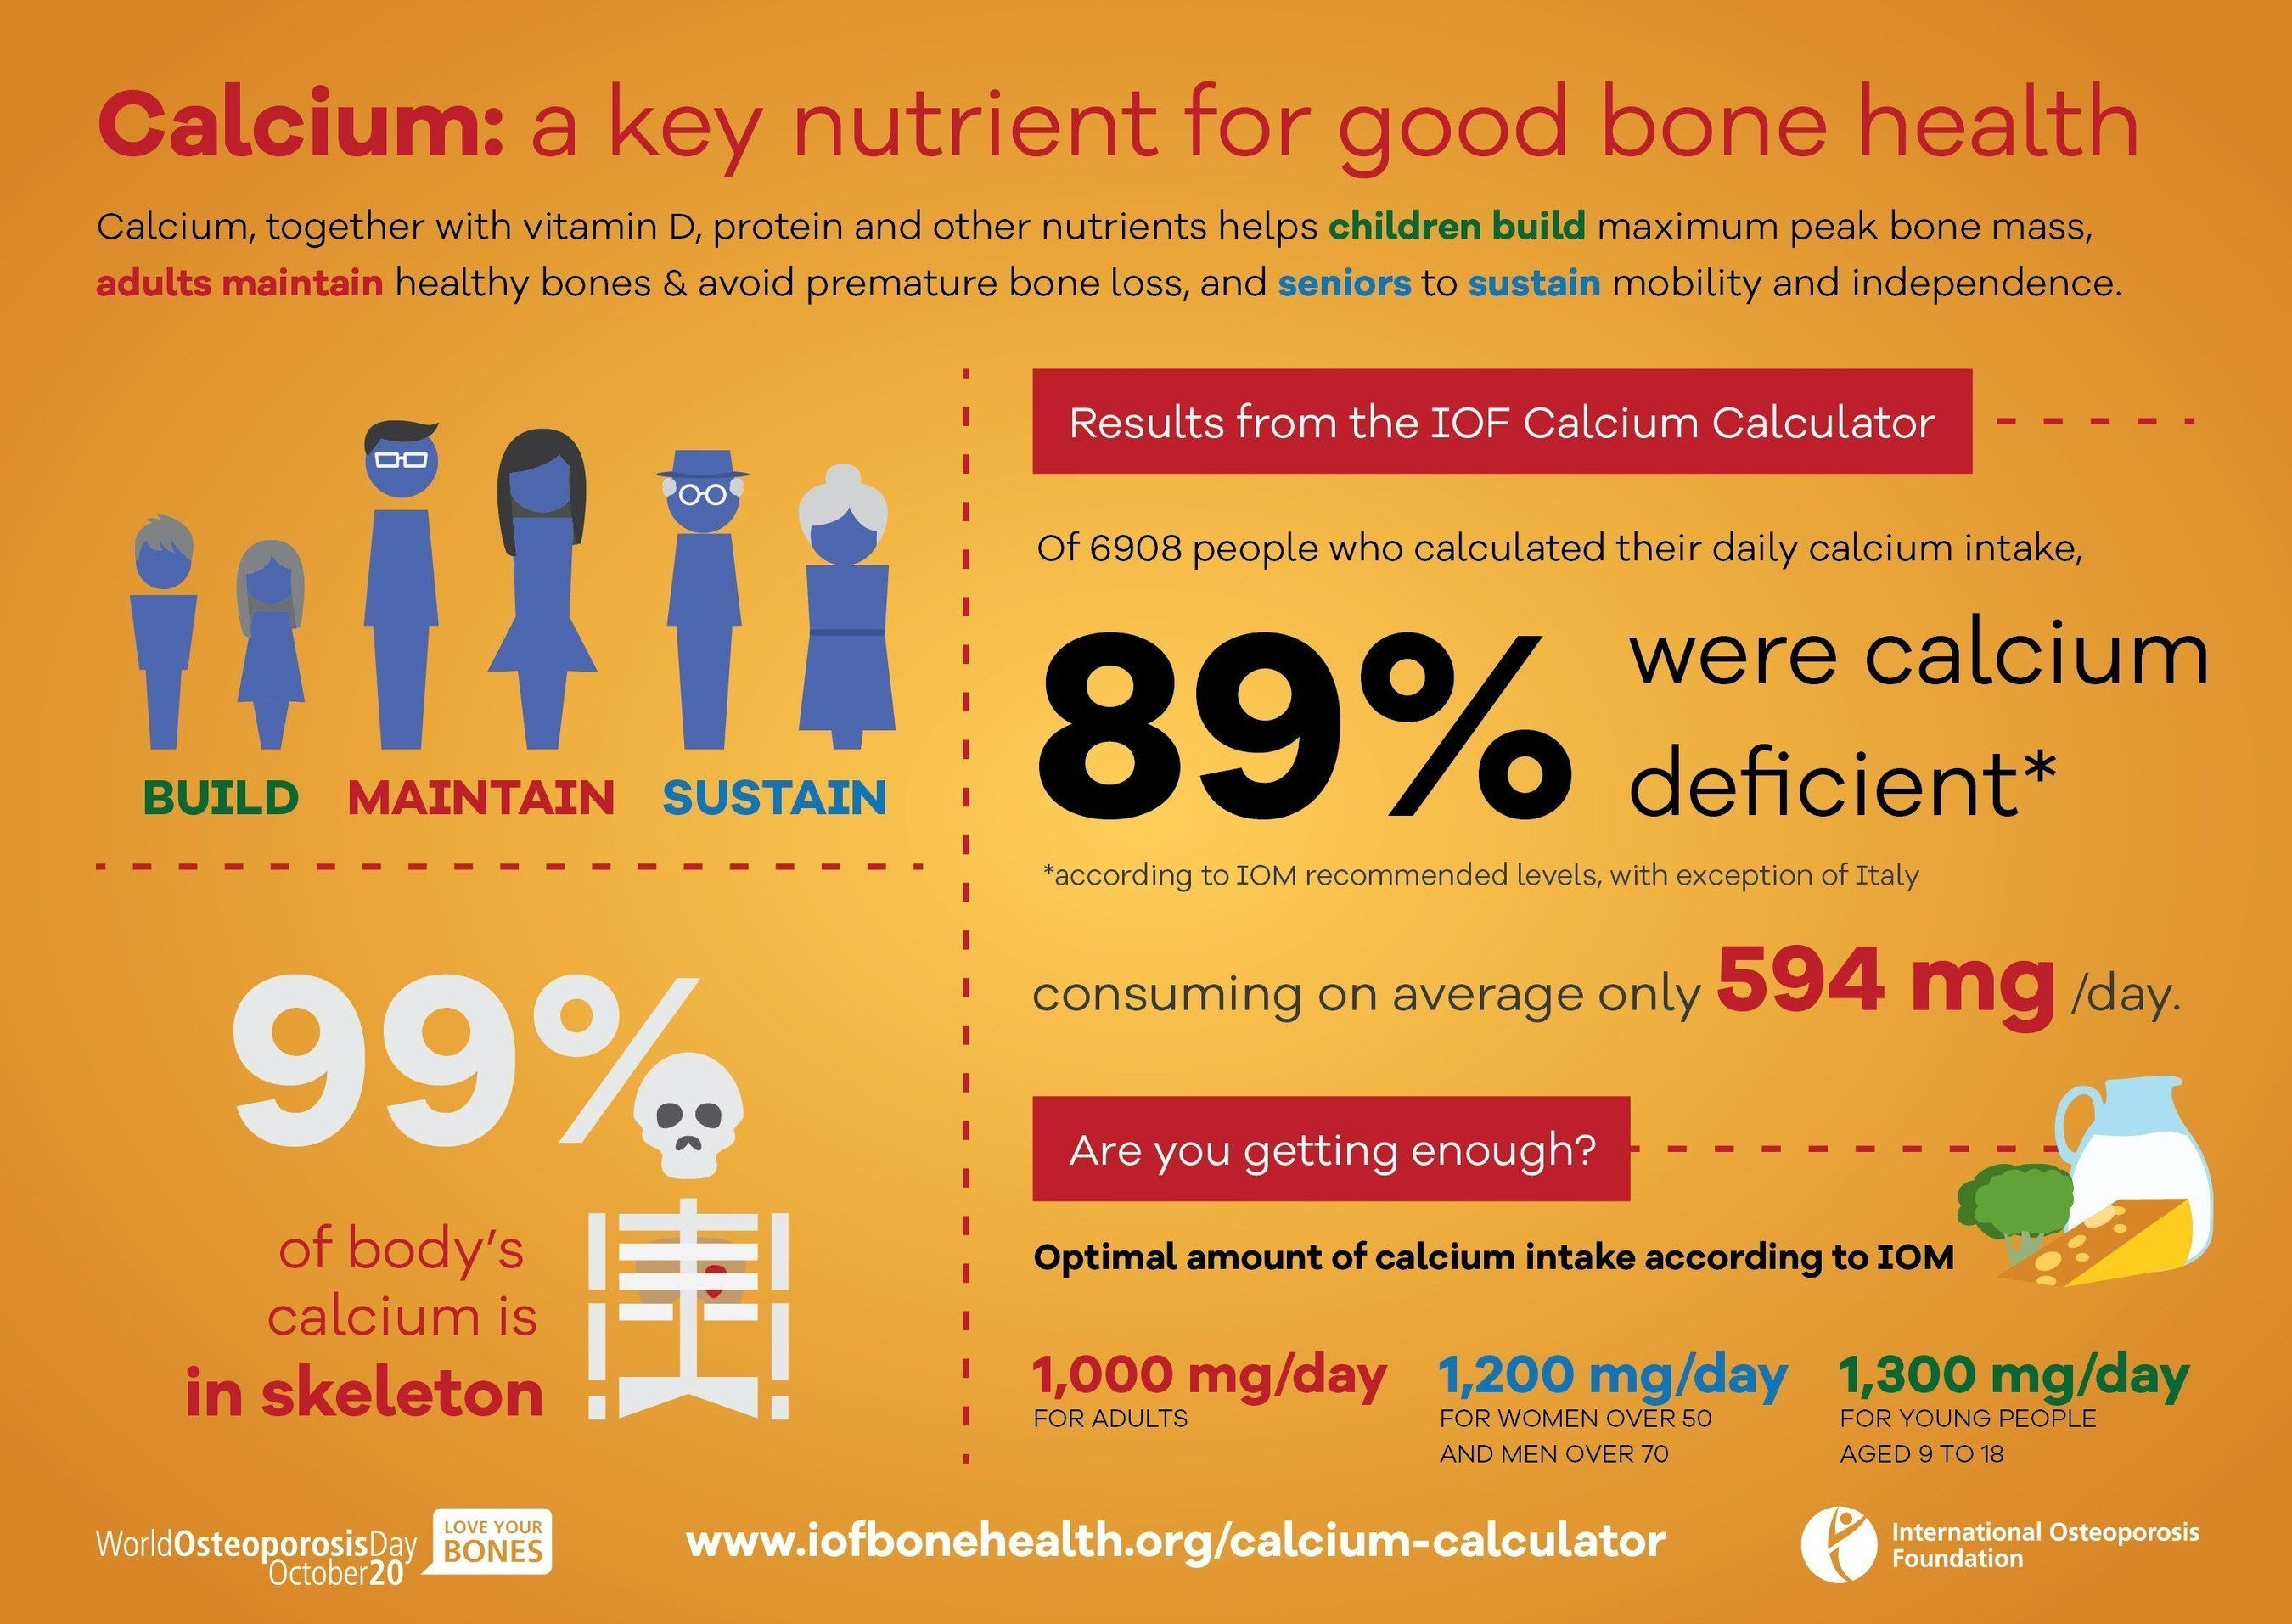 The International Osteoporosis Foundation (IOF) is concerned that people may not be getting enough calcium to ...